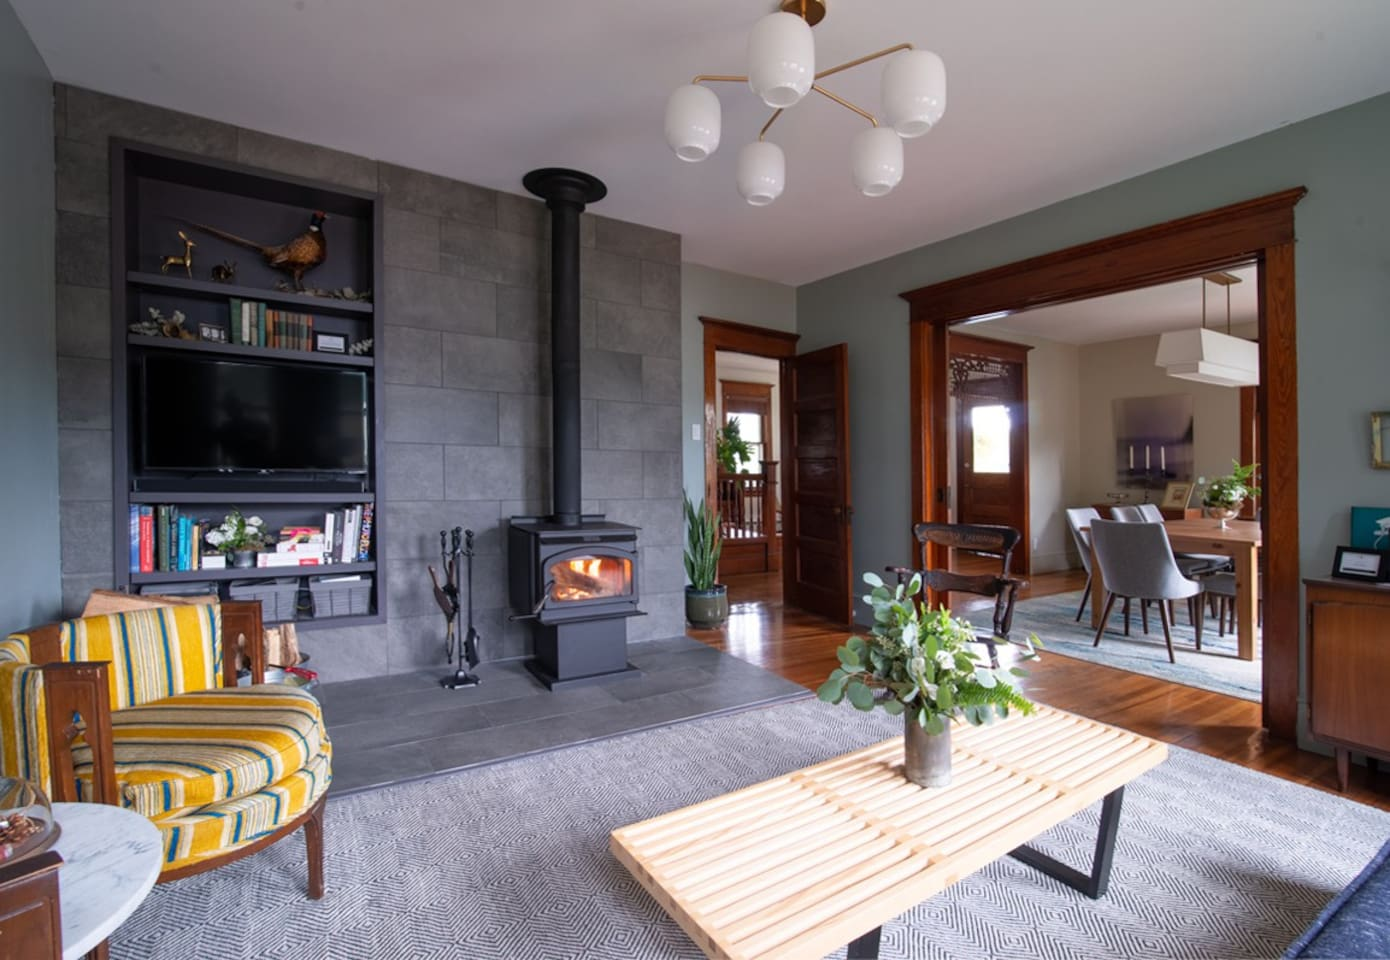 Enjoy some quiet time by the wood burning stove, watch a movie in surround sound, spin some classic records or just enjoy spending time with friends and family.